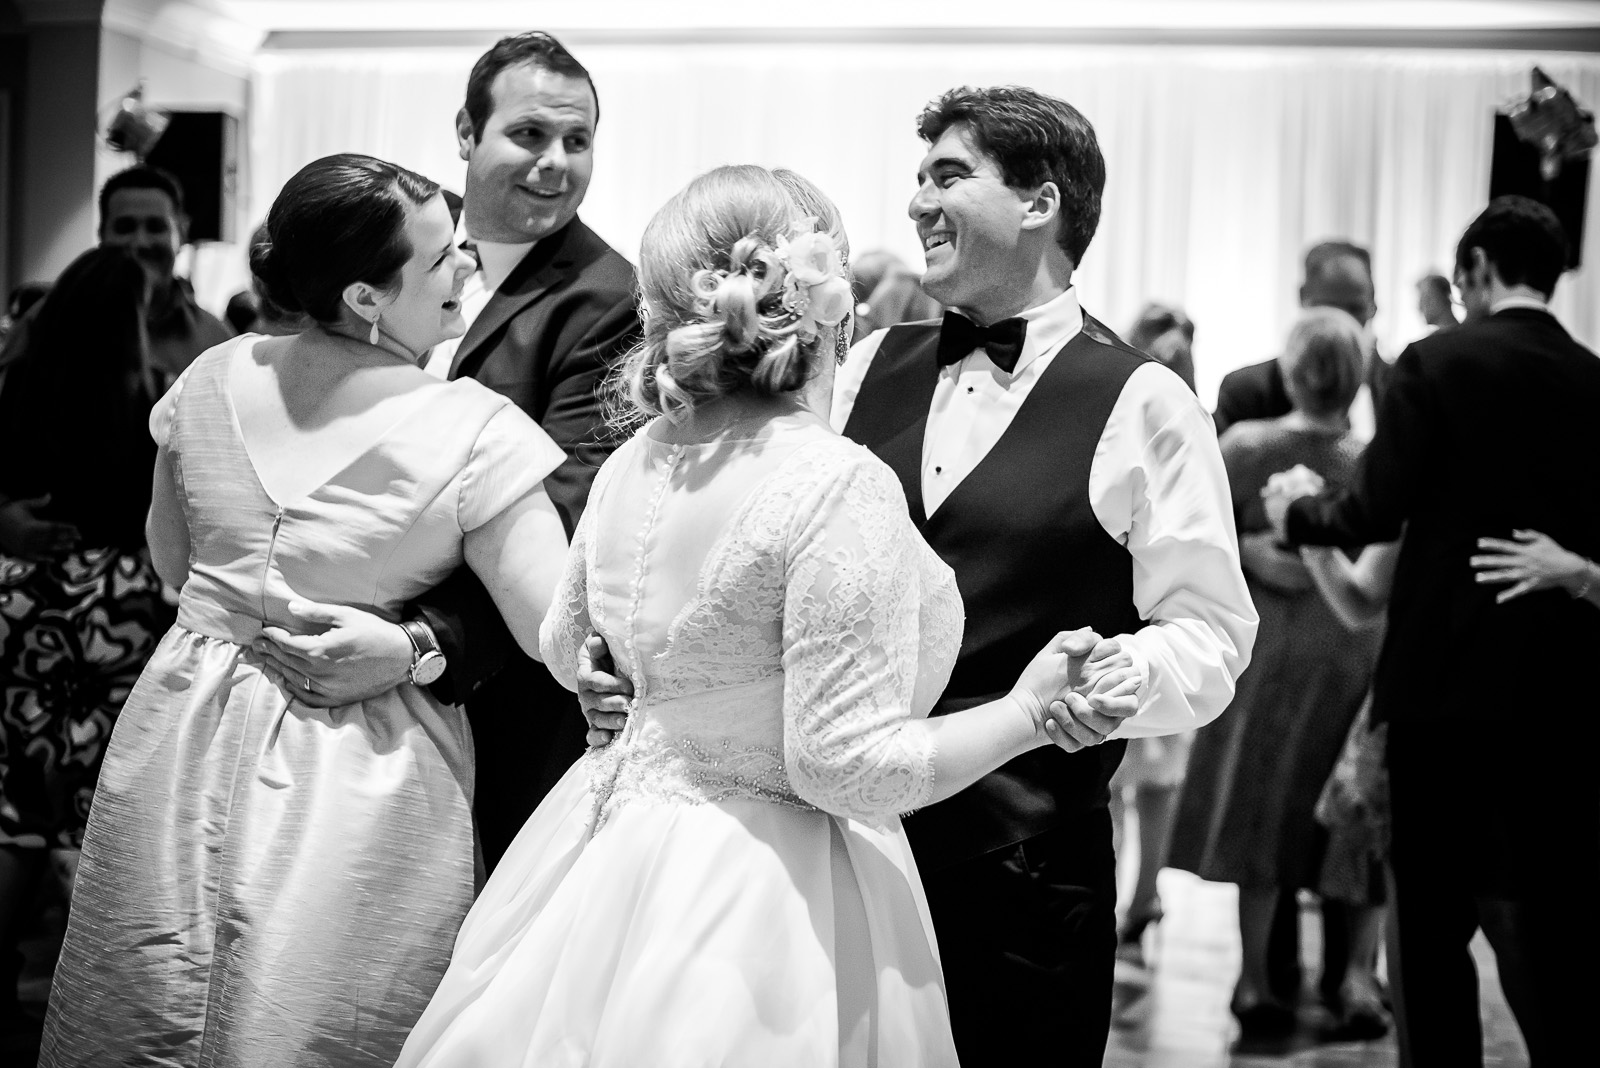 eric_and_christy_photographers_blog_wedding_emilypeter-55